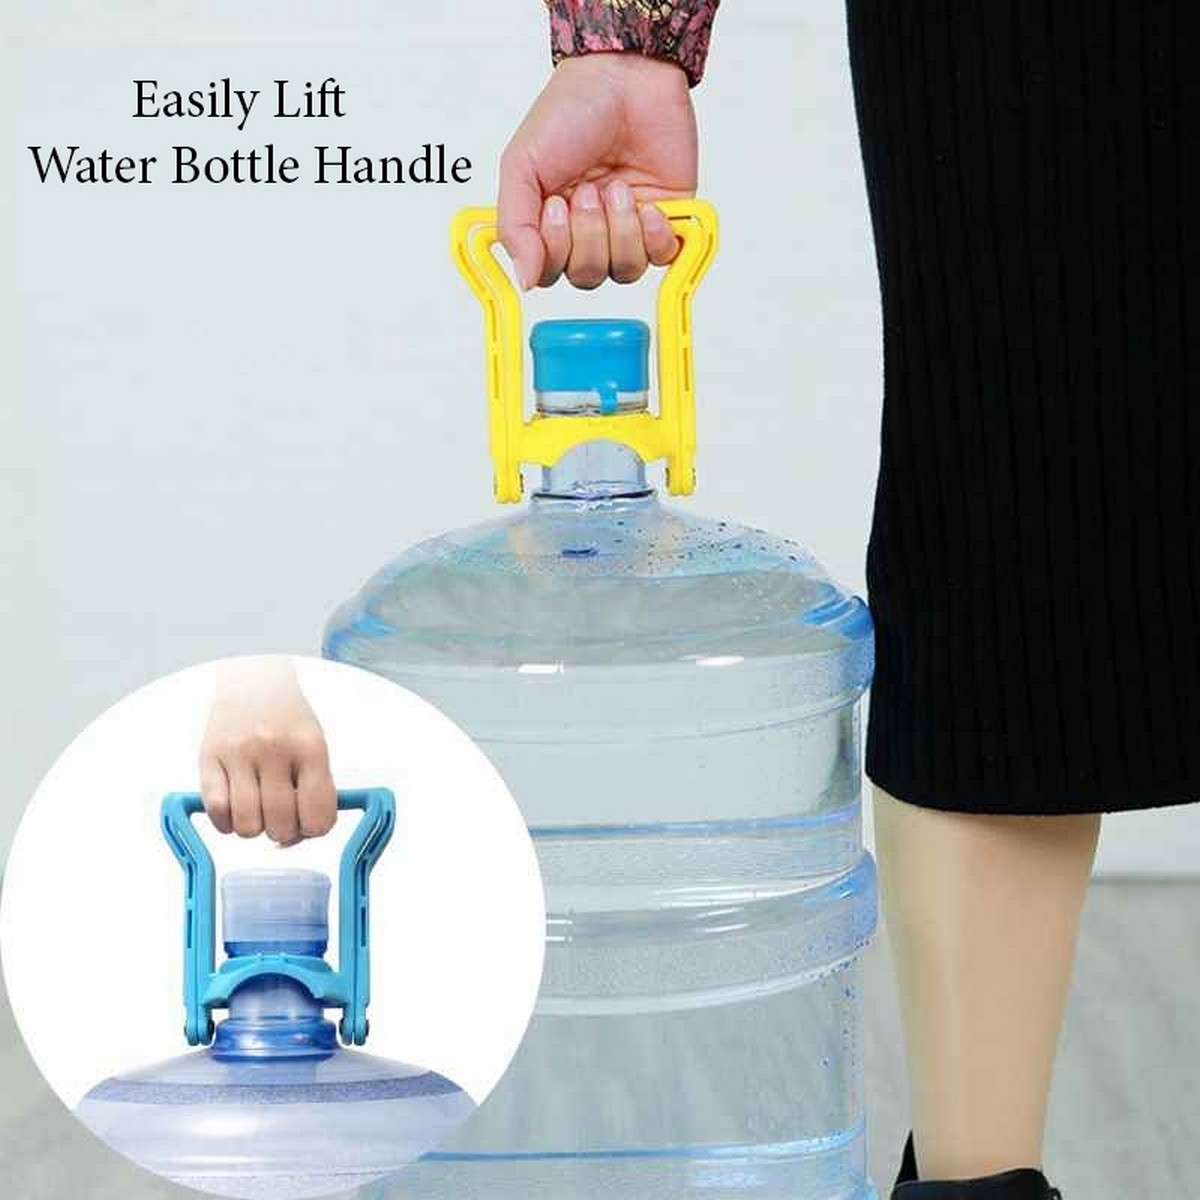 High Quality Durable Flat Water Bottle Can Handle - Easy Lifting for 19~20 Litter Flat Water bottle Holder handle